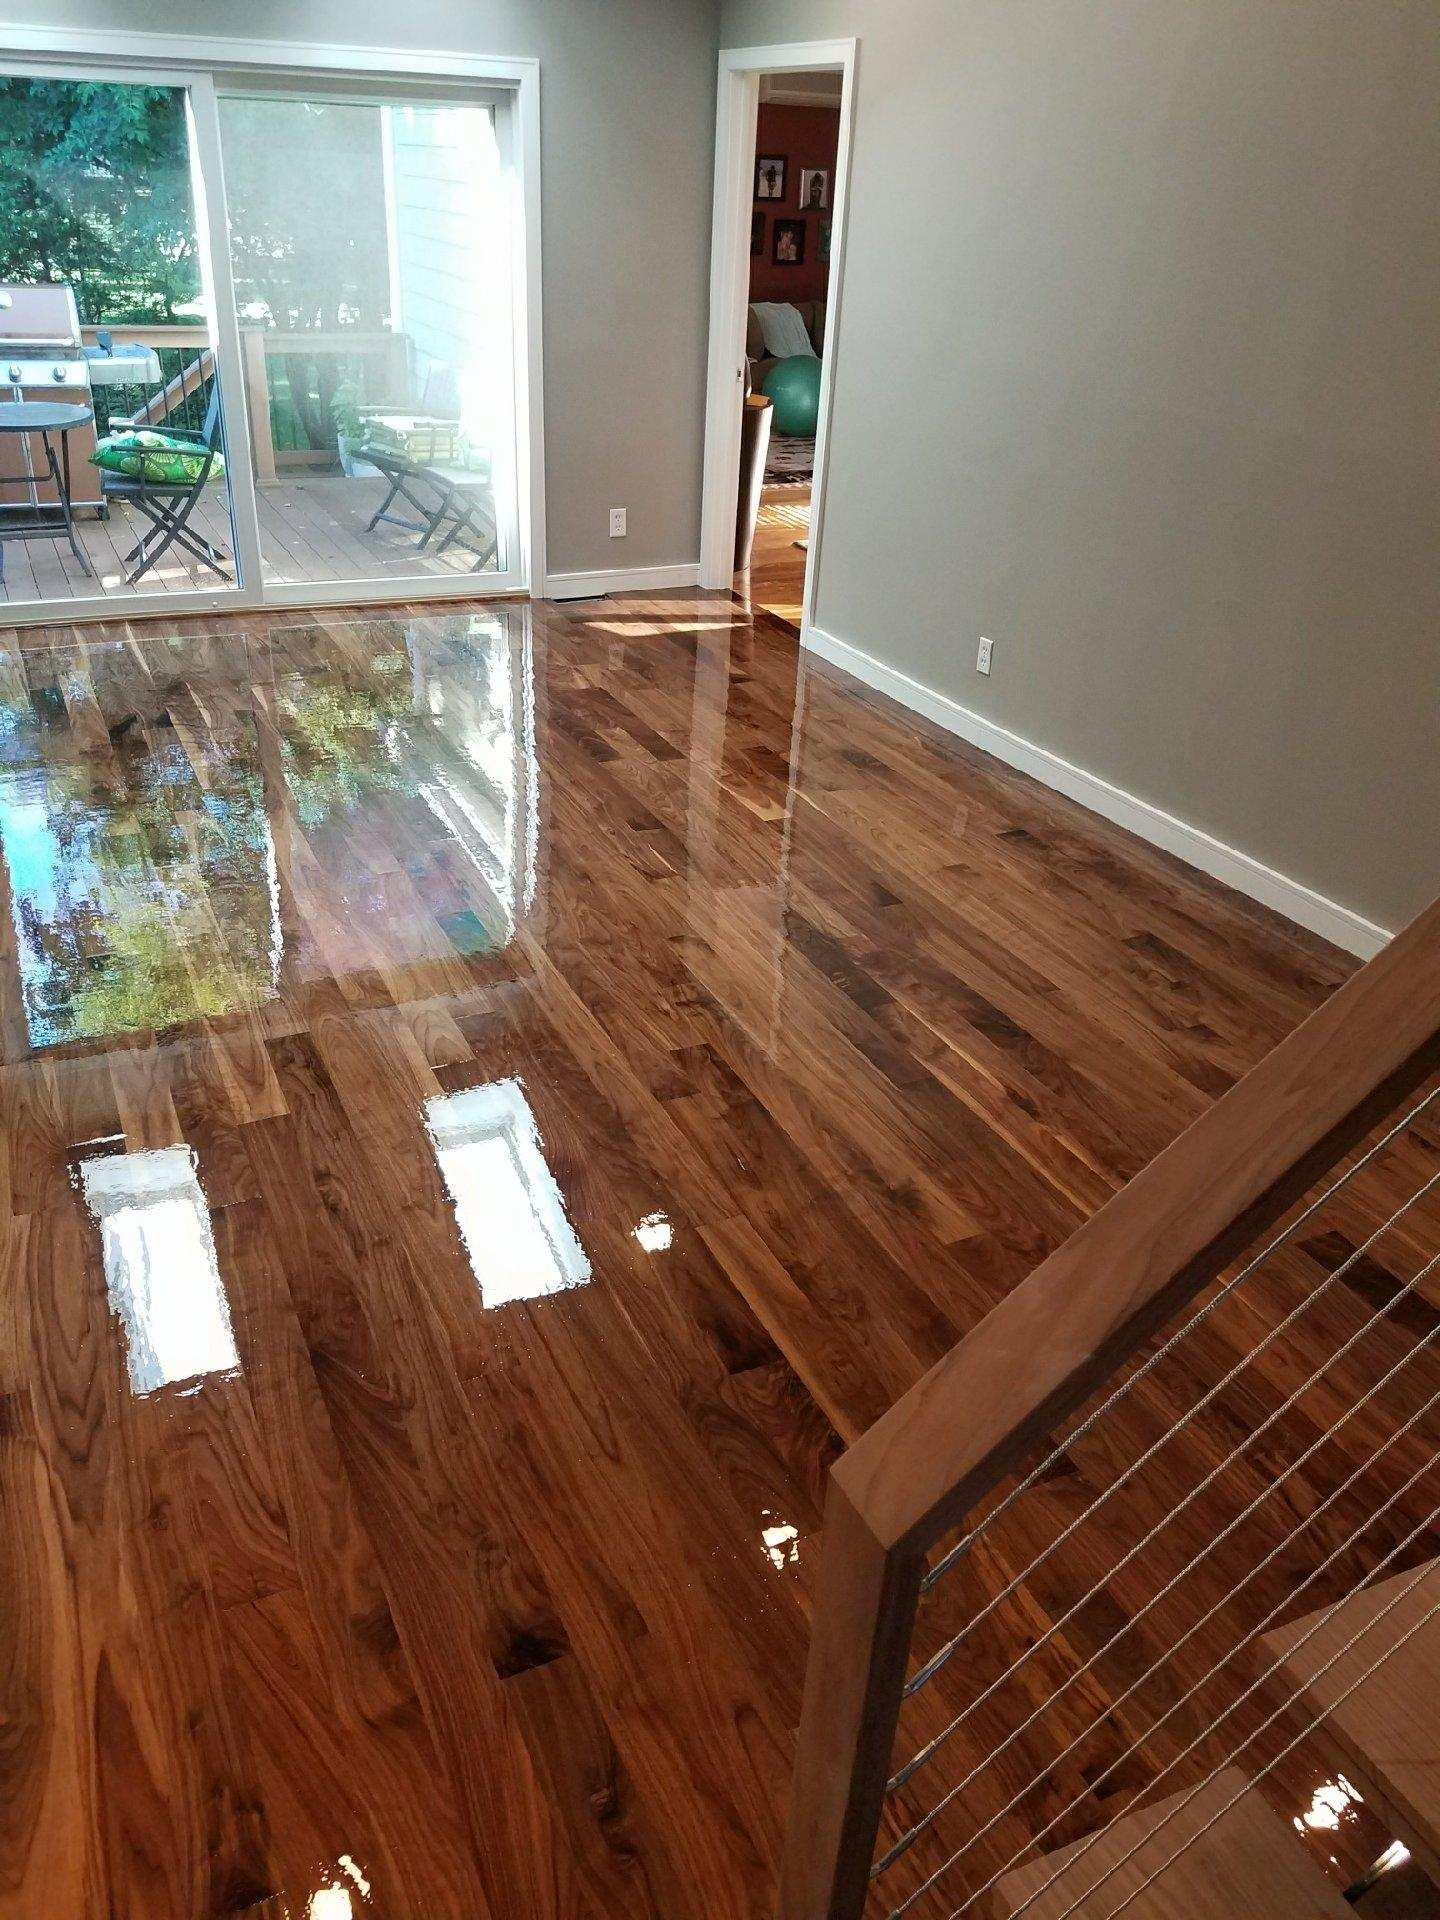 wood minwax in illinois flooring red decatur stained state davis early with floor oak springfield floors american